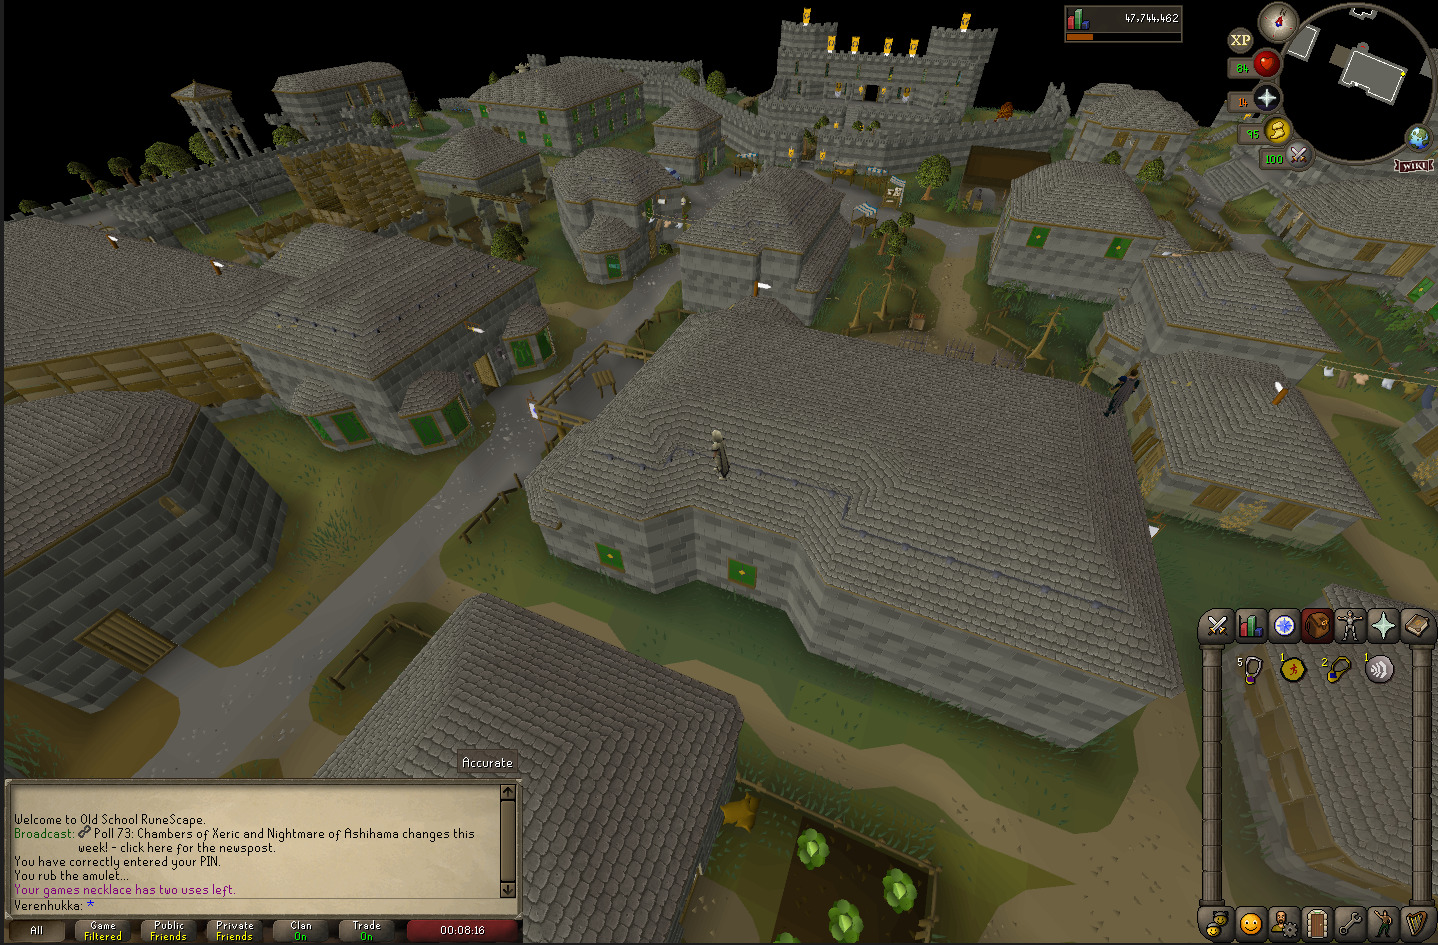 A view from a rooftop in Varrock